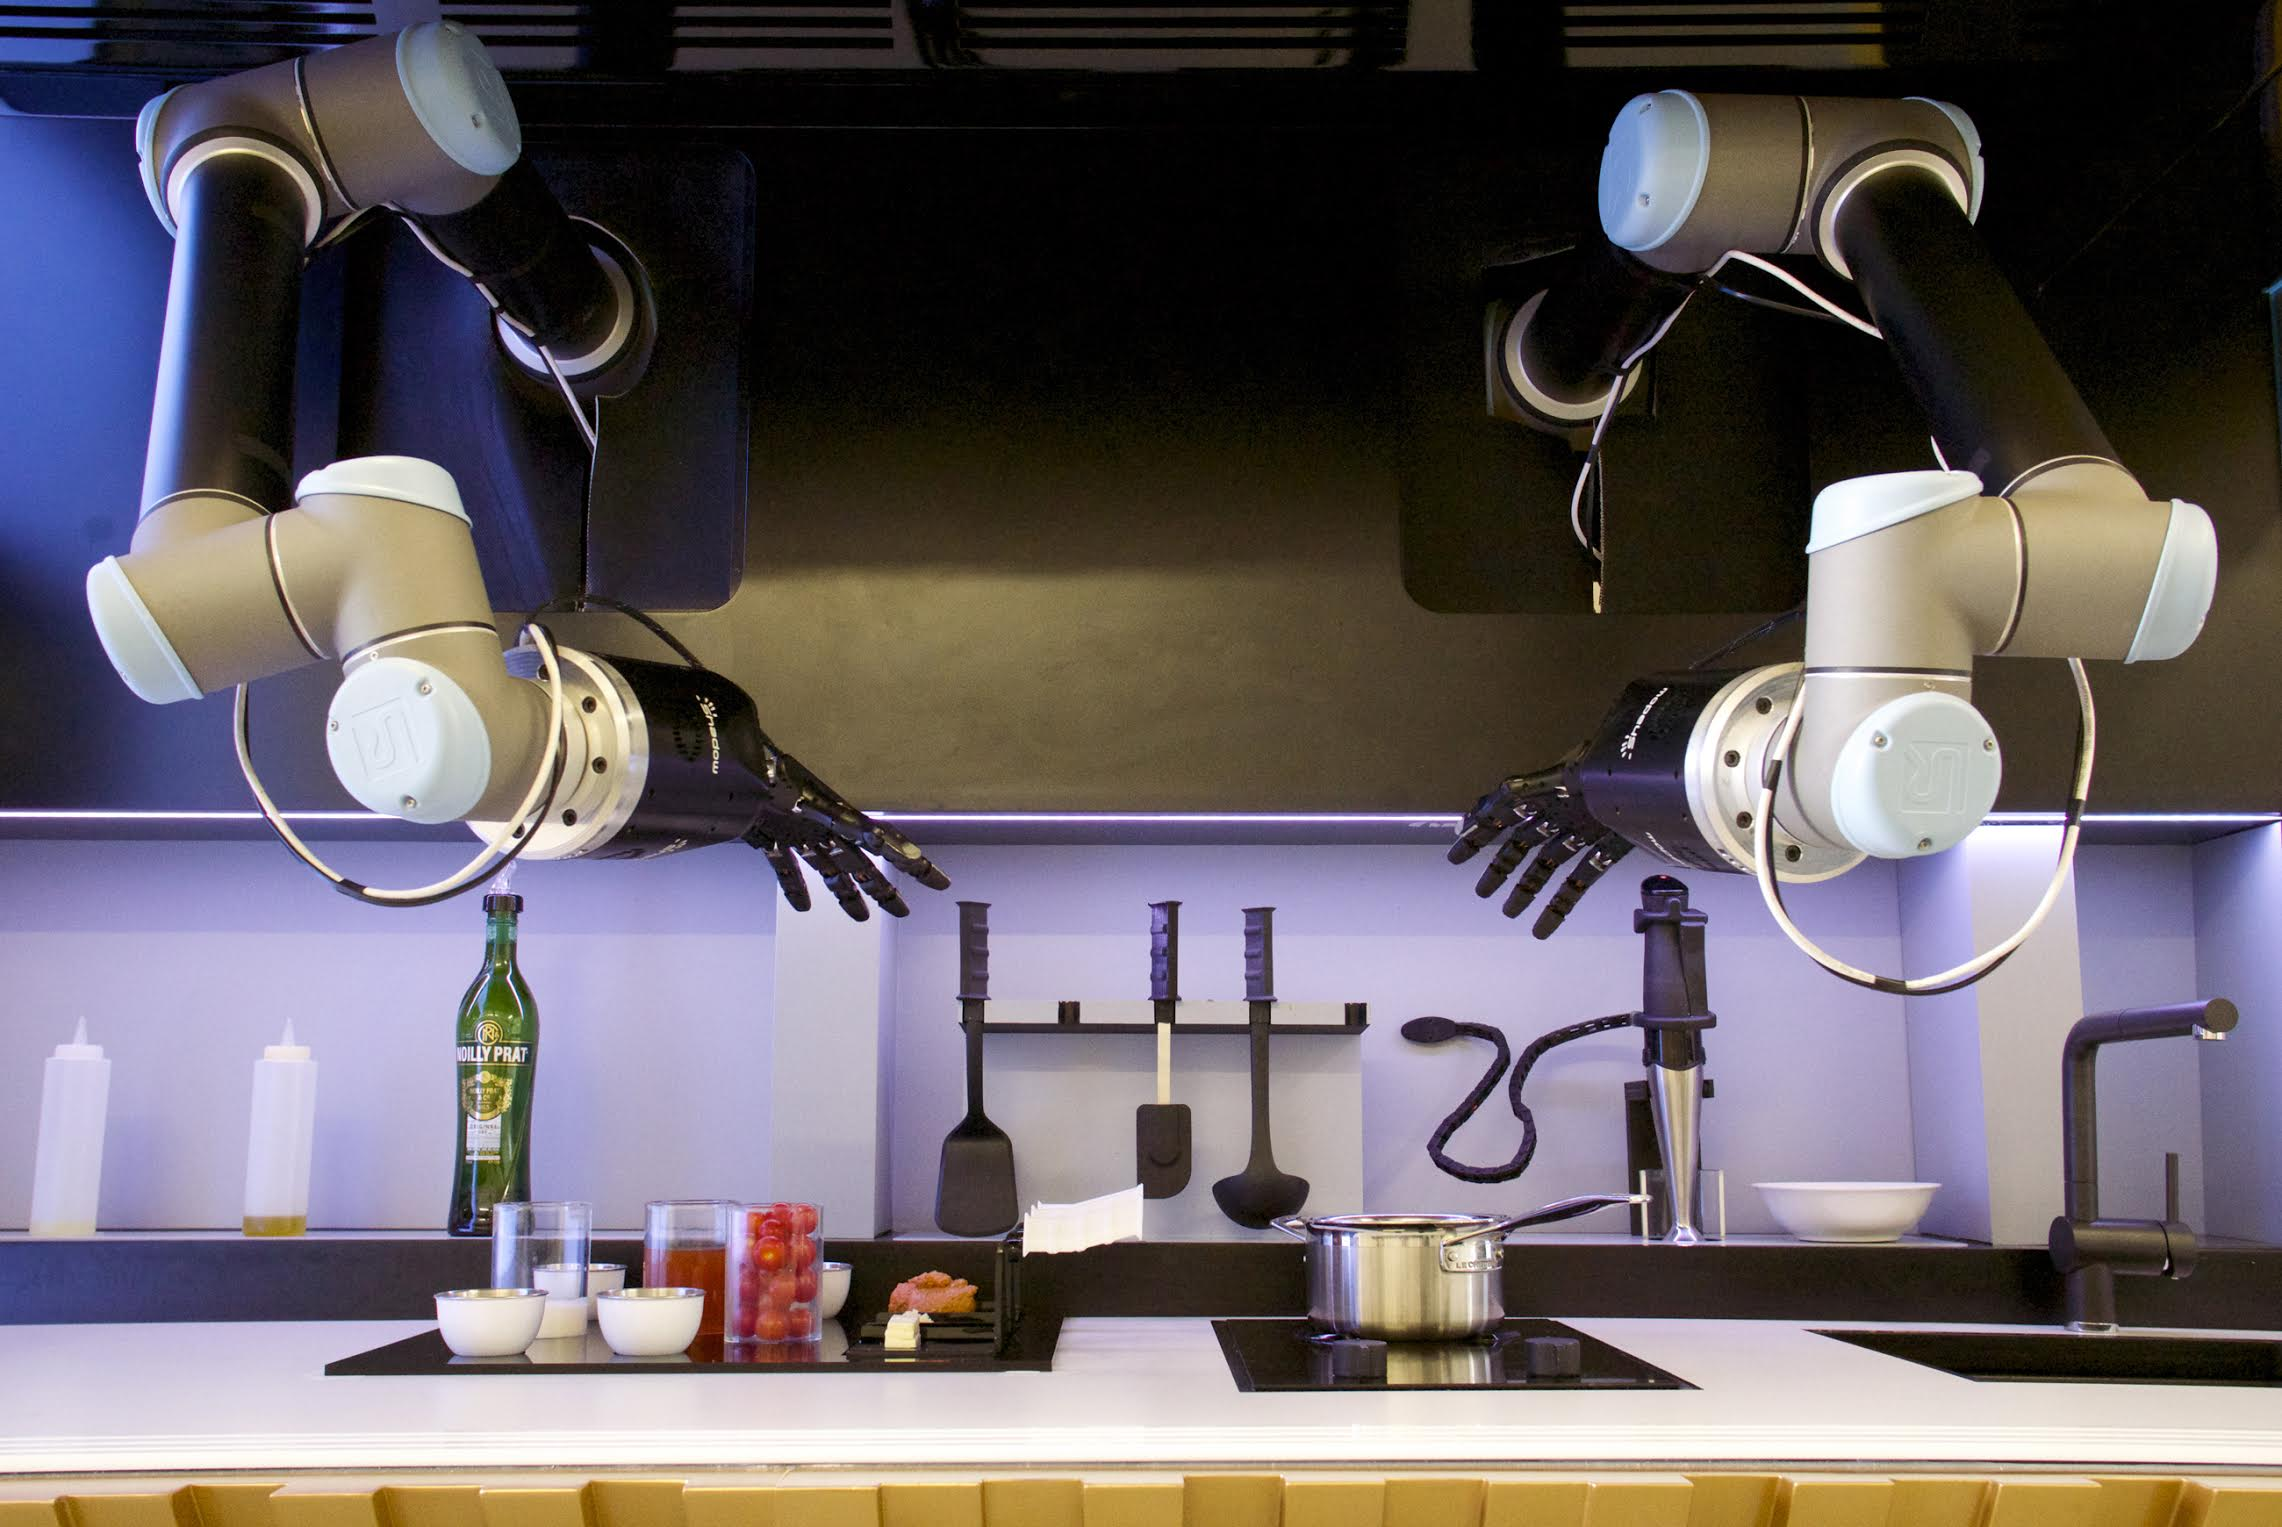 Robotic Kitchen HEADER